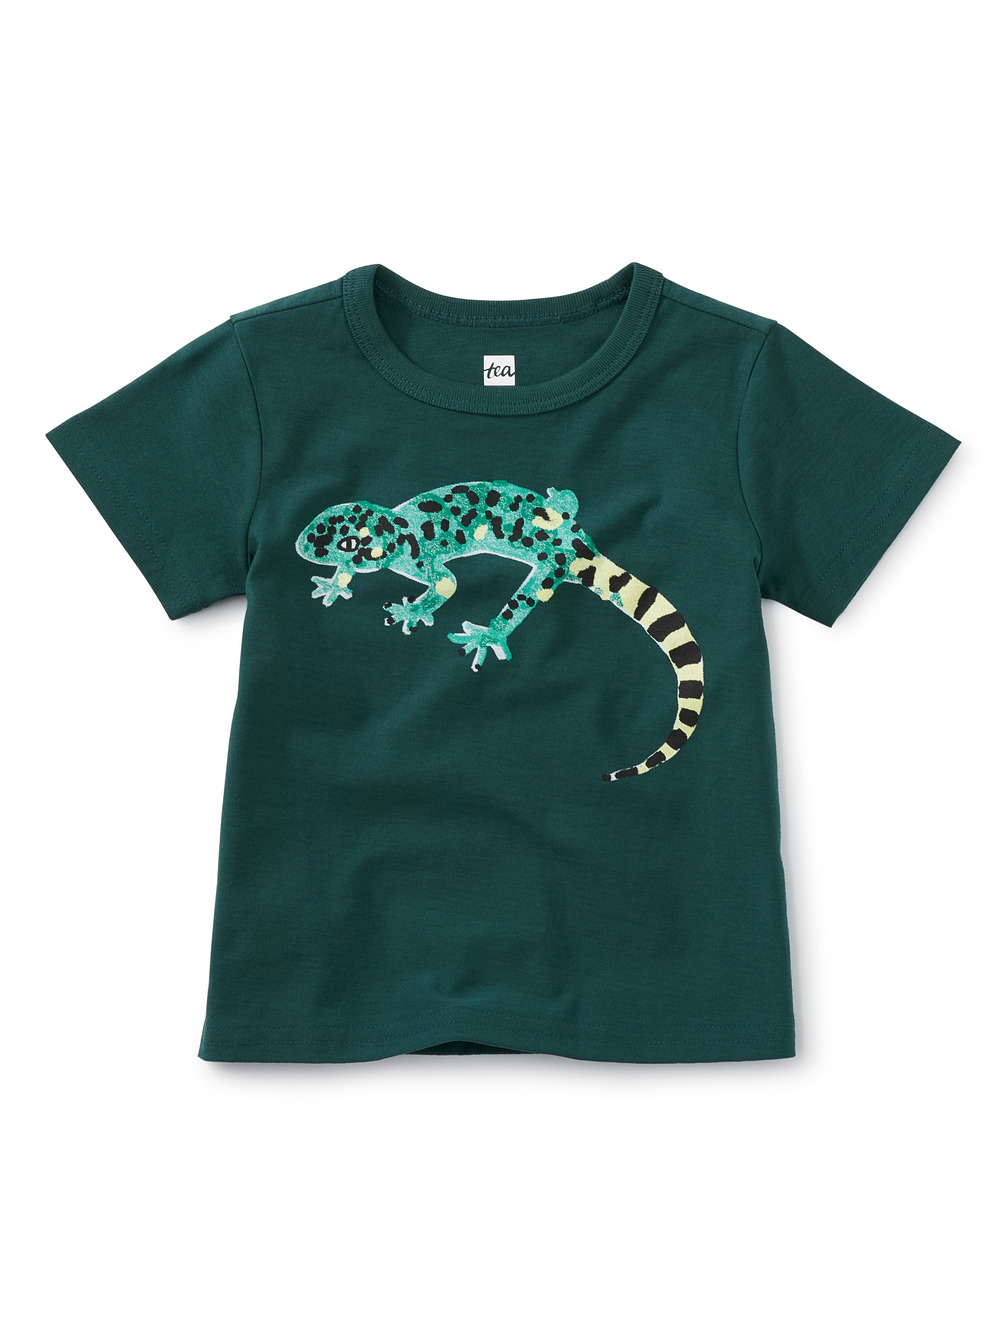 Lounging Lizard Baby Graphic Tee